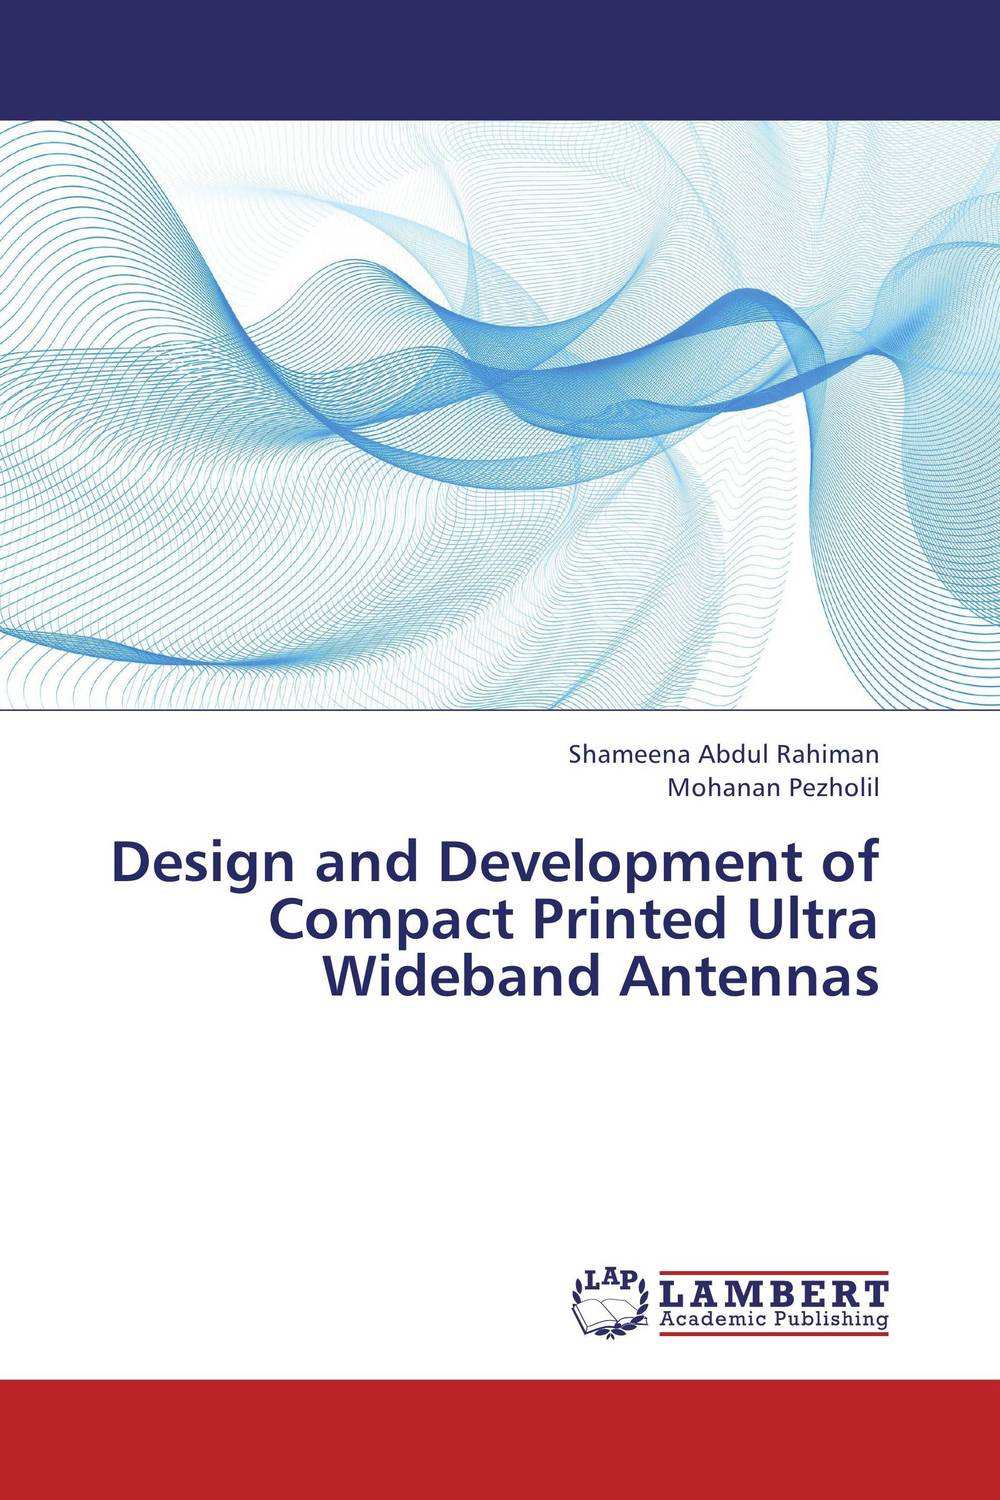 Design and Development of Compact Printed Ultra Wideband Antennas ultra wideband communications systems structure and design